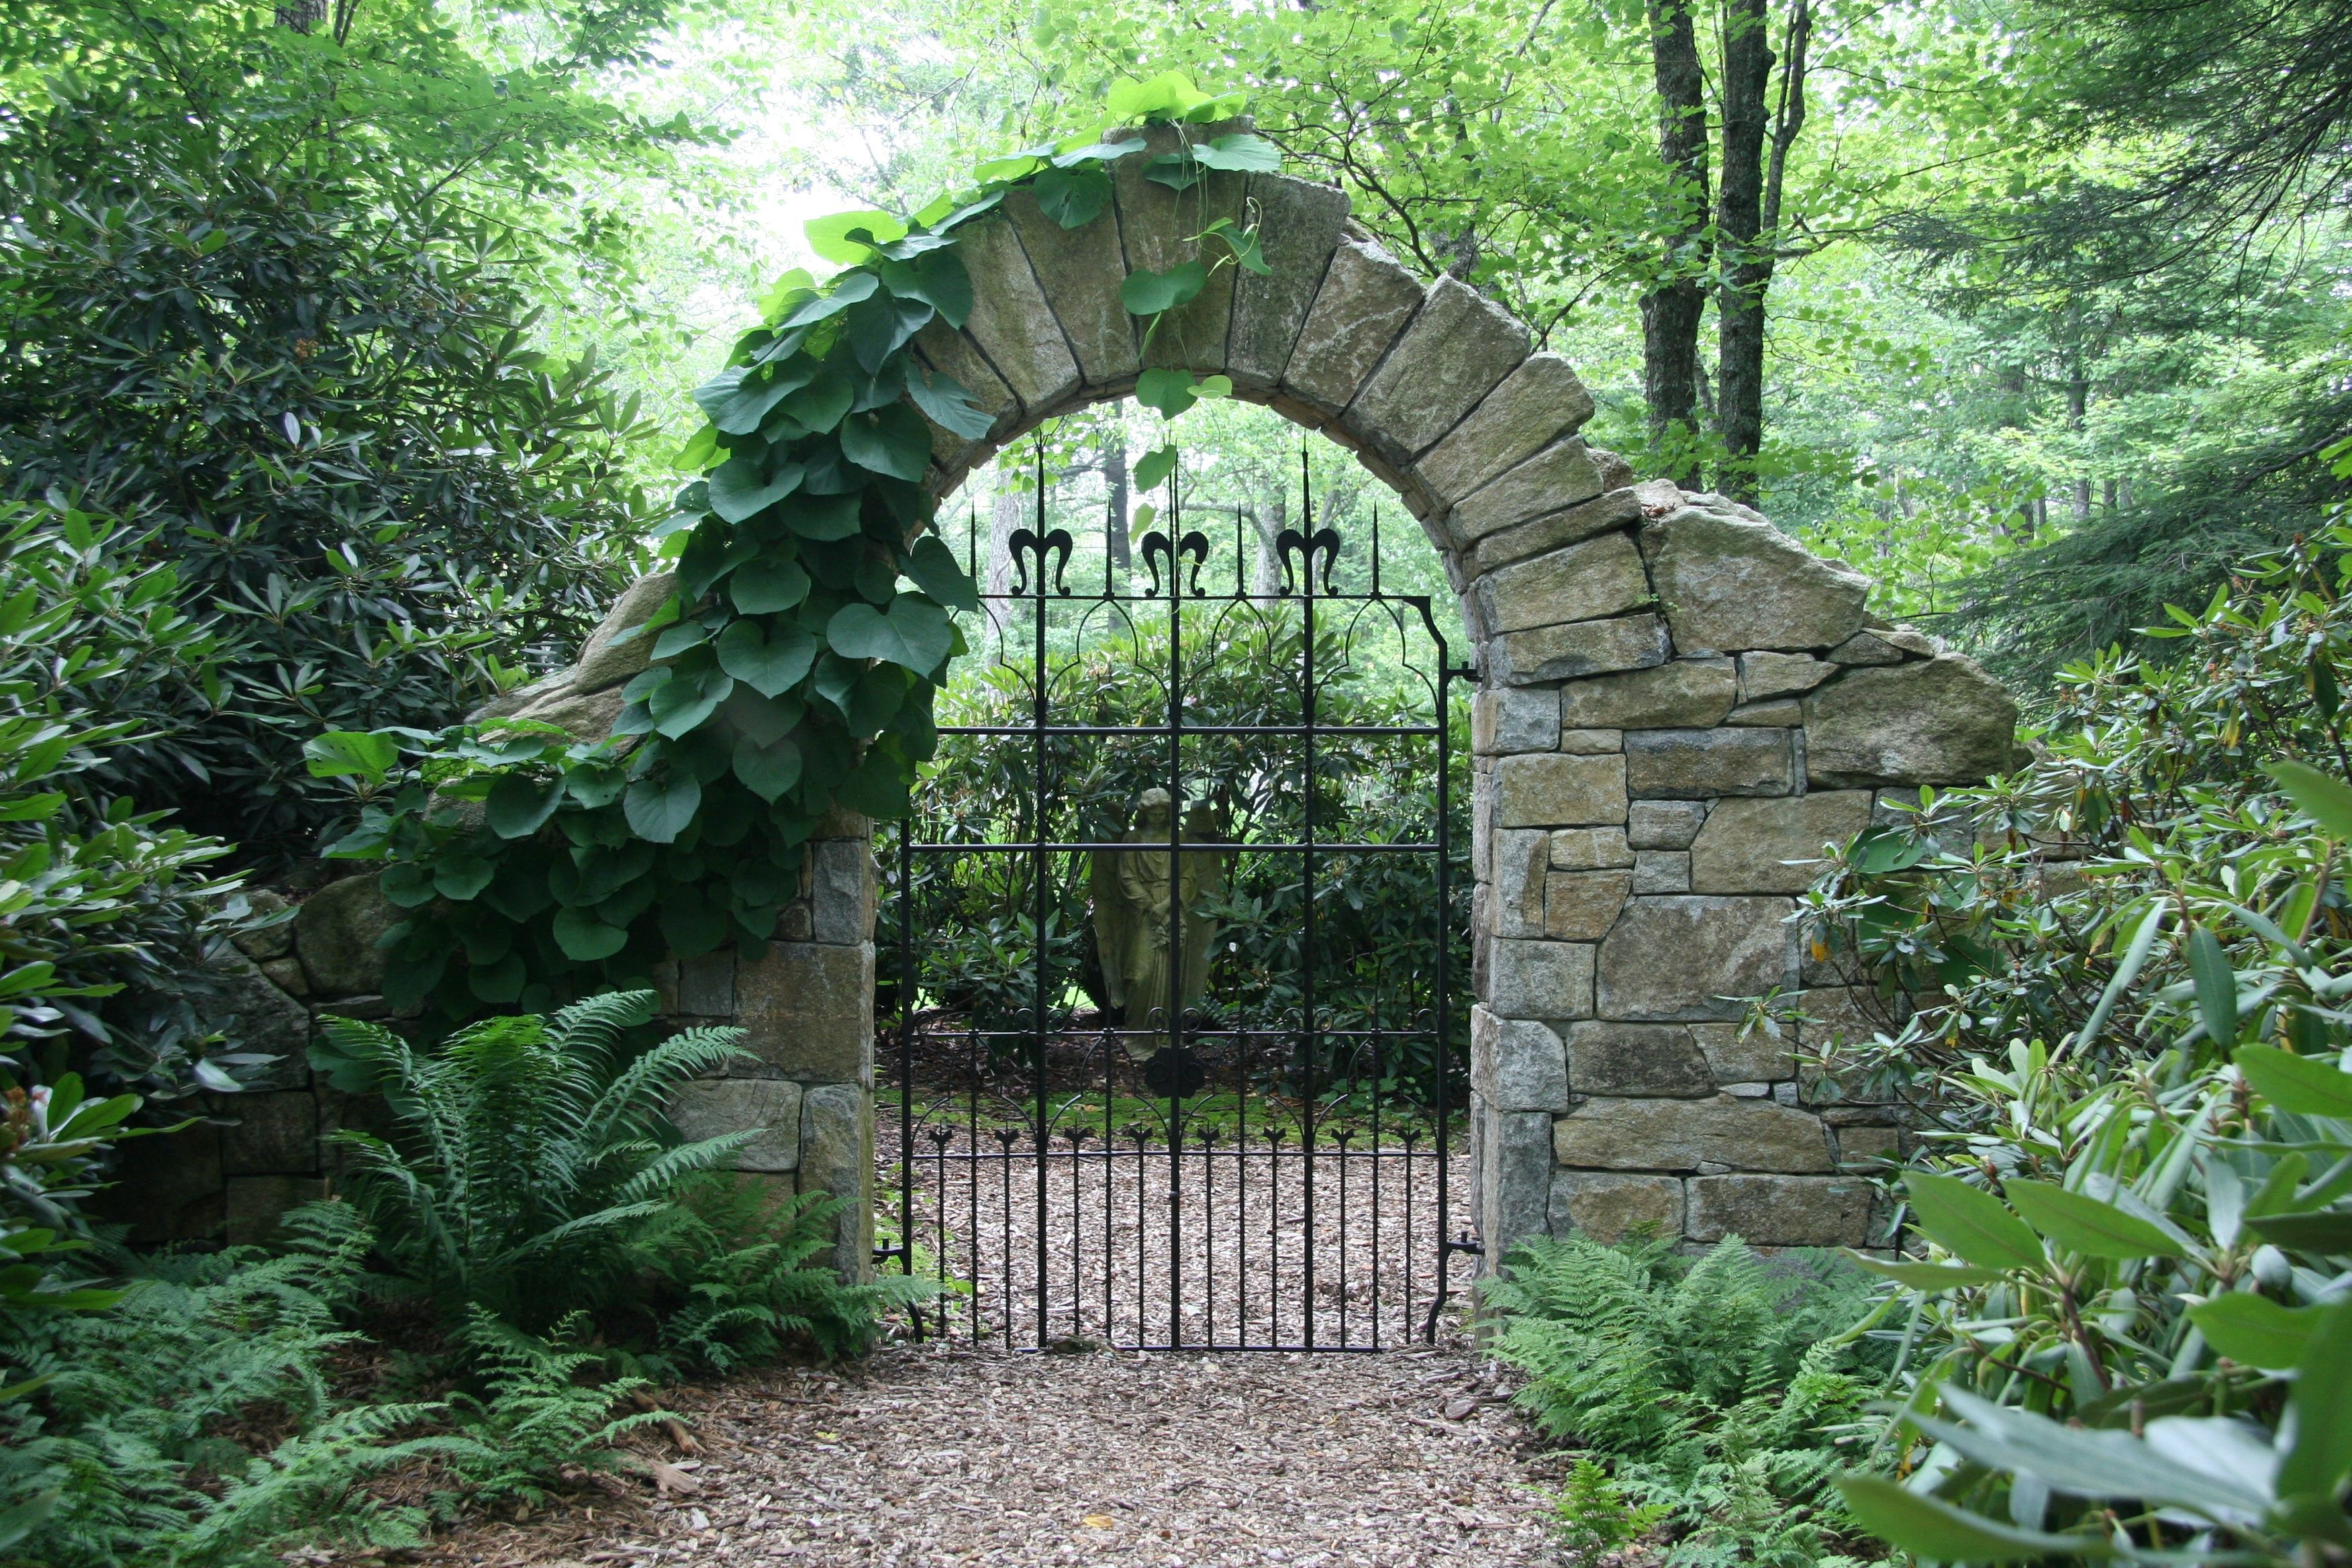 Stone Arch & Gate With Dutchmans Pipe